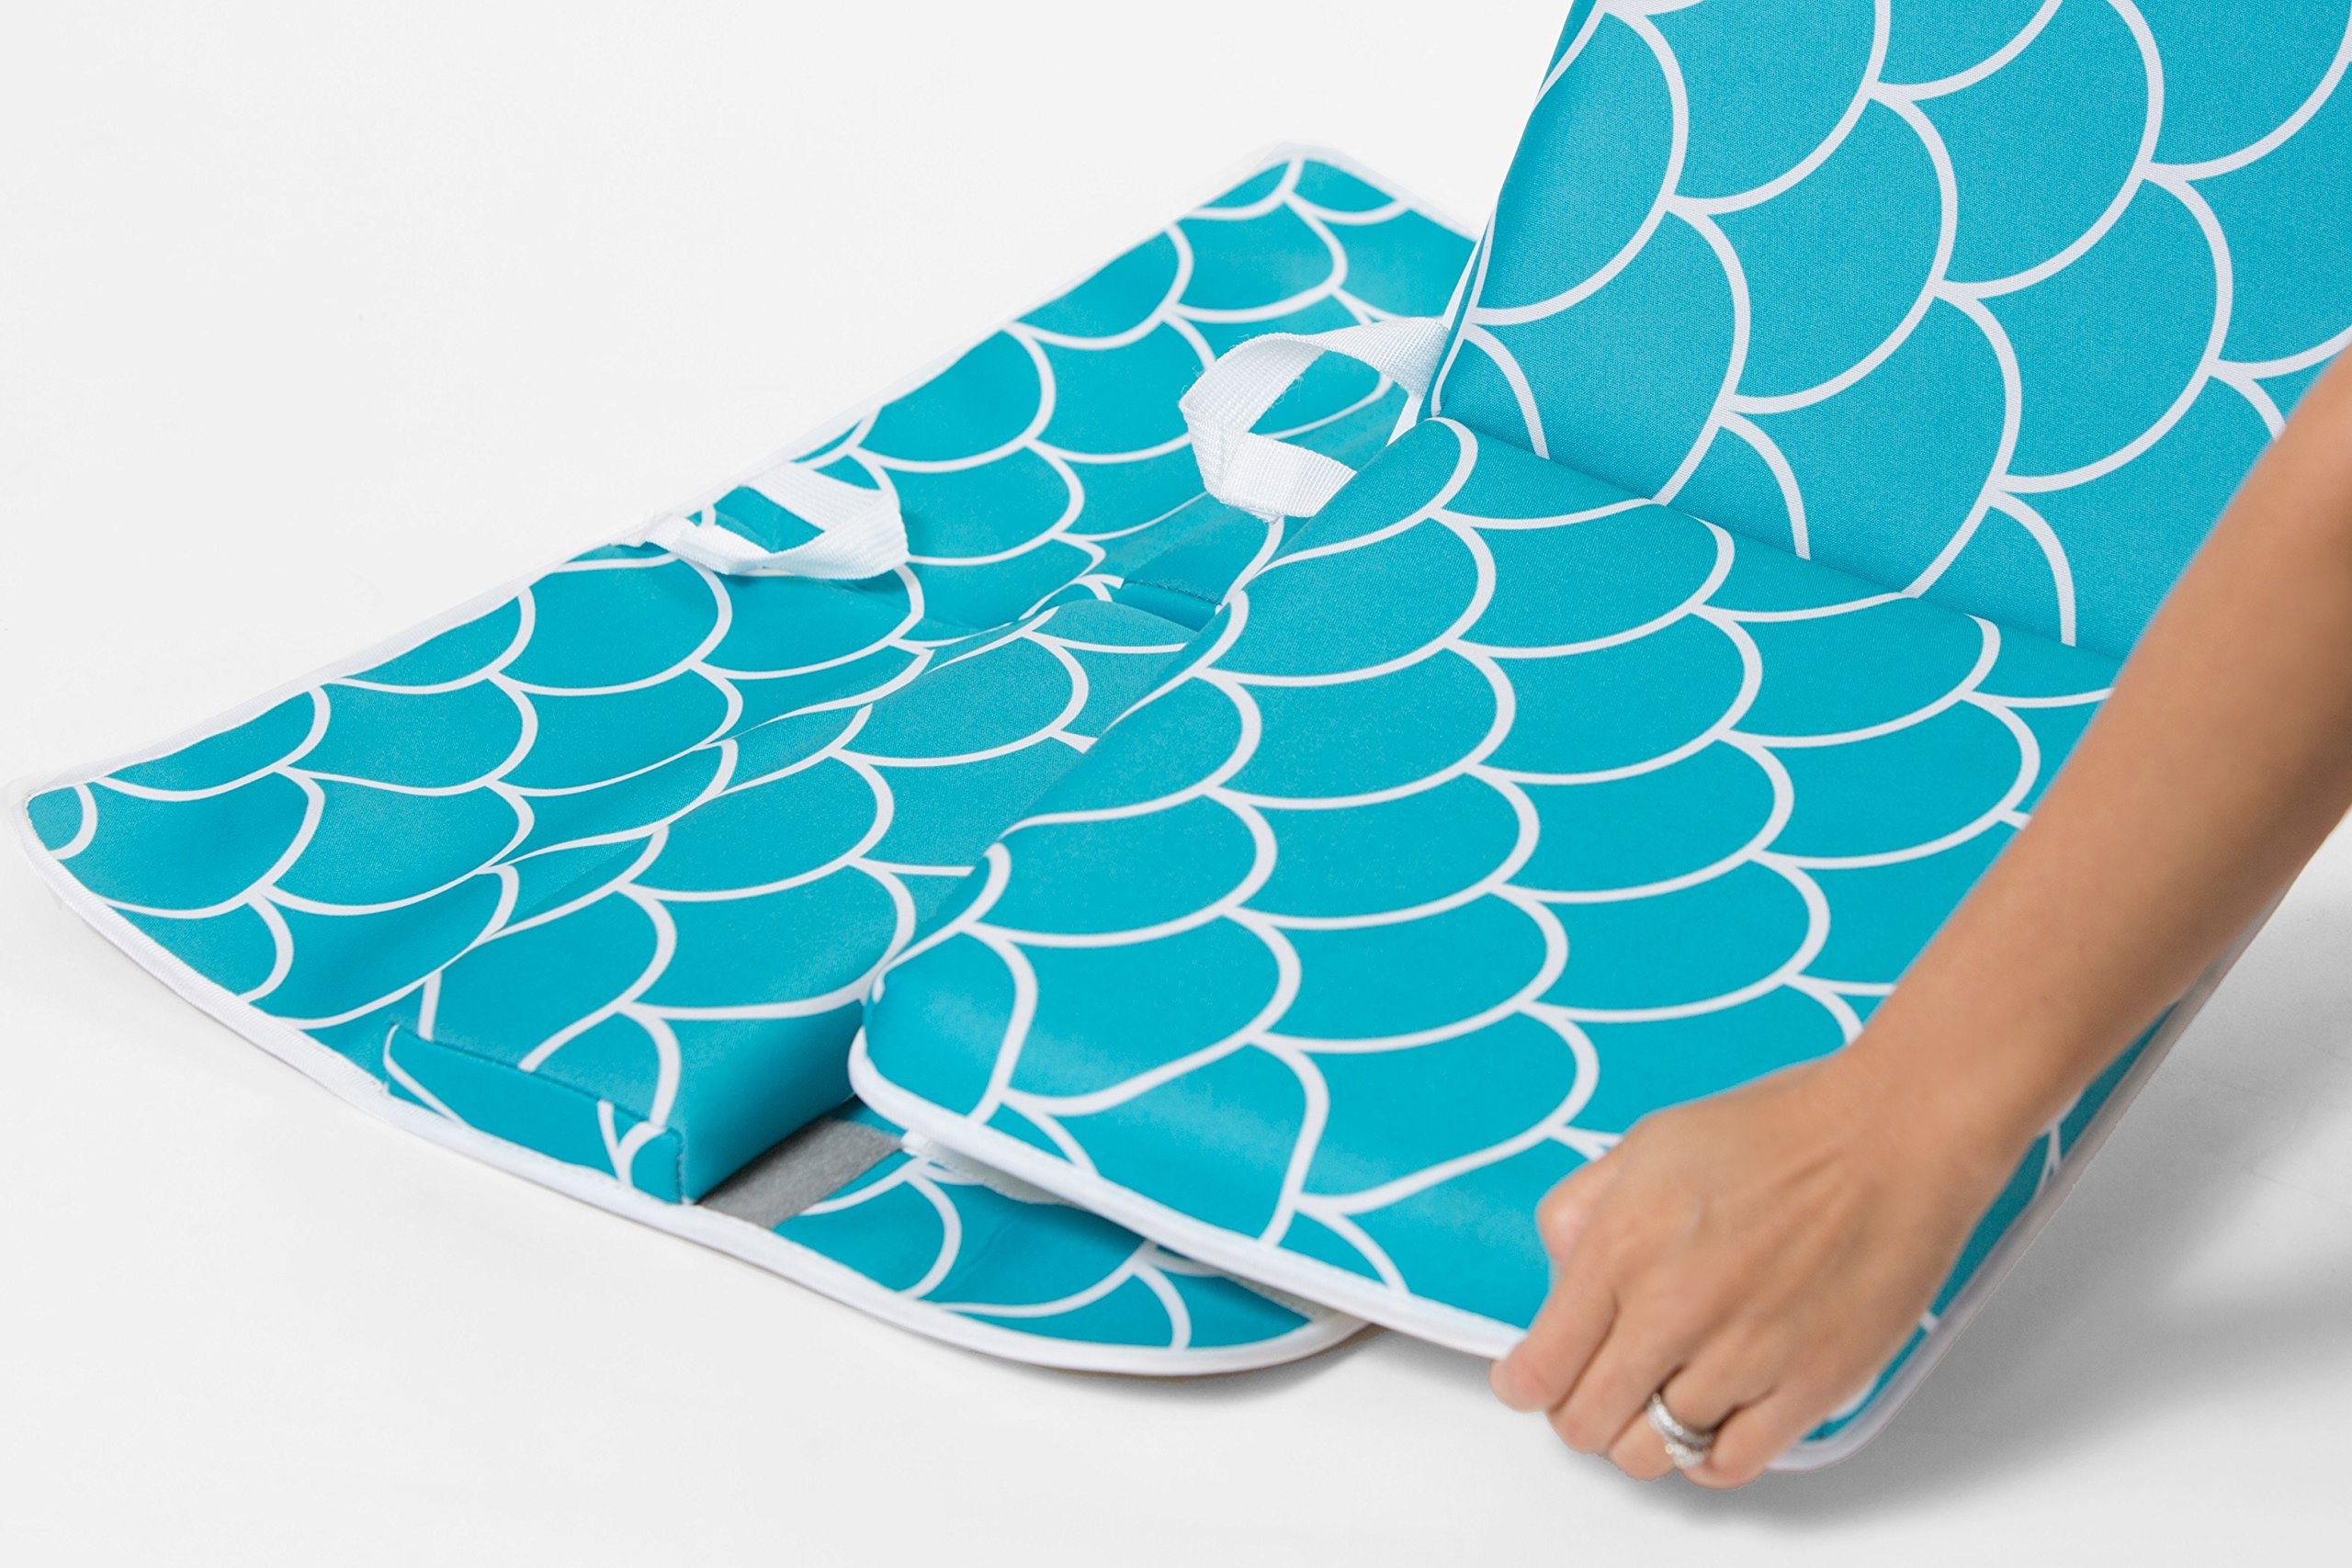 Baby Bath Kneeling Pad with Elbow Rest - Extra Long - Mermaid Design in Teal Blue - with Bonus Mesh Bath Toy Organizer - Wonderful Gift Set for Parents with a Infant, Toddler - by Fins + Tales (Image #1)